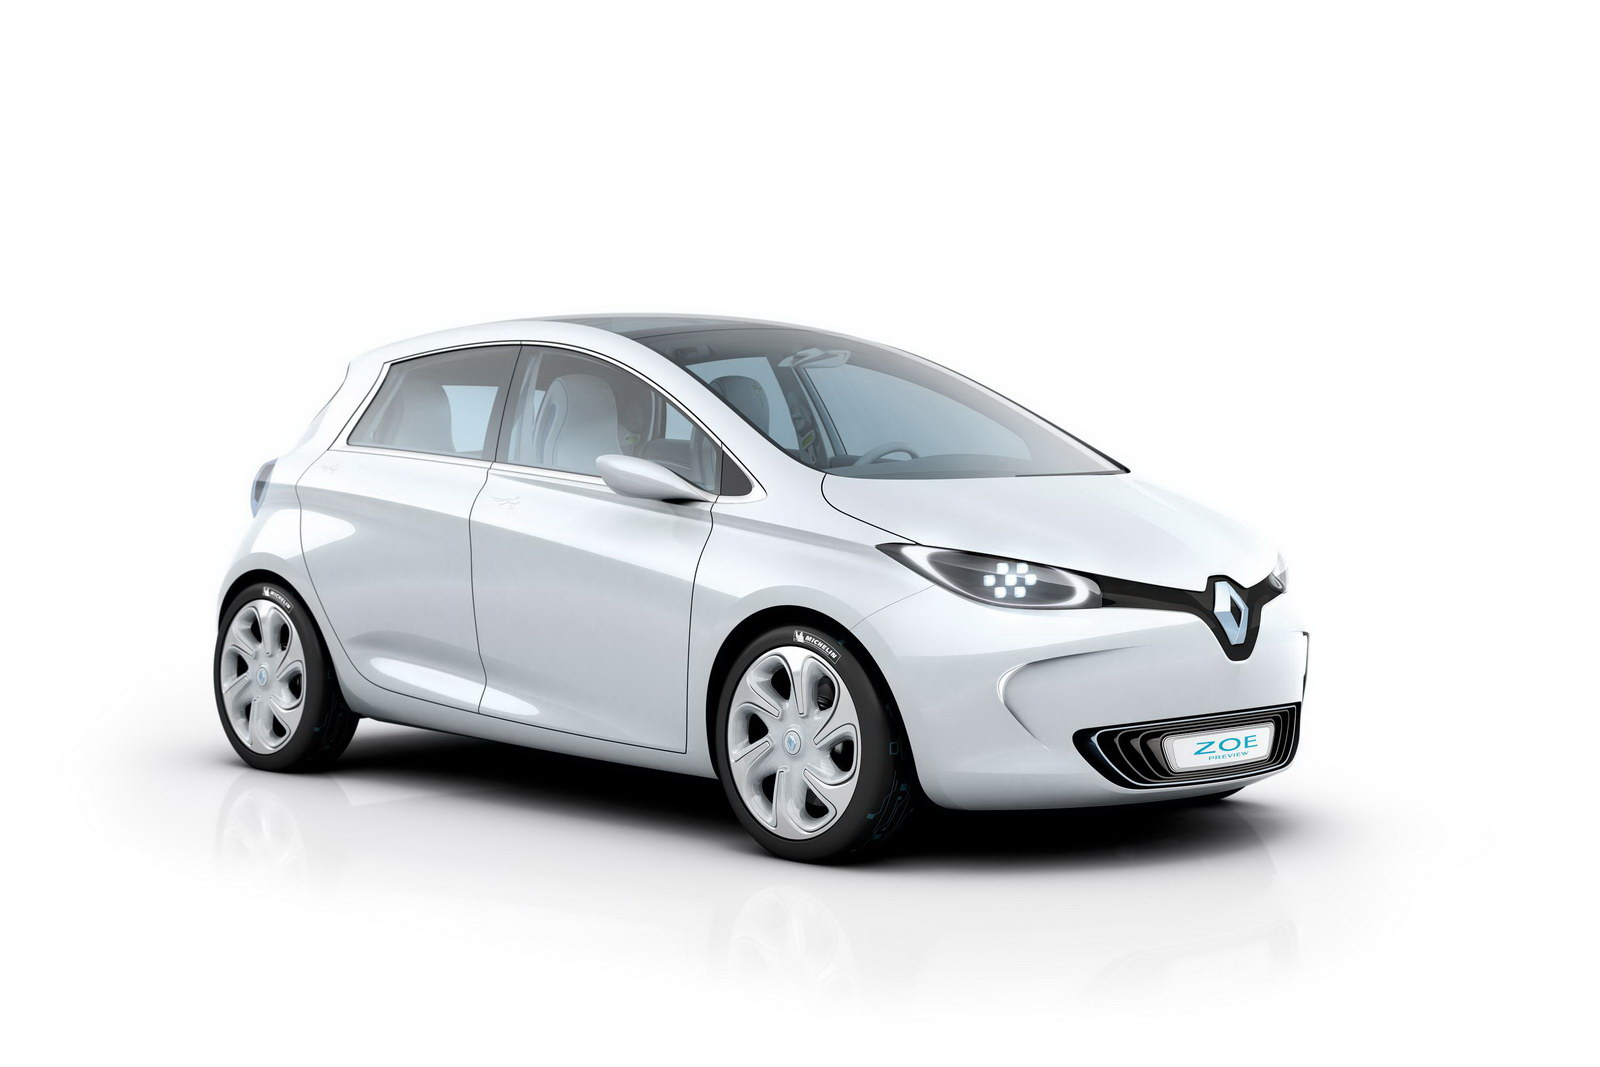 Renault 2 Renault to Launch All Electric Twingo in 2014, Zoe Z.E. slated to release in 2012